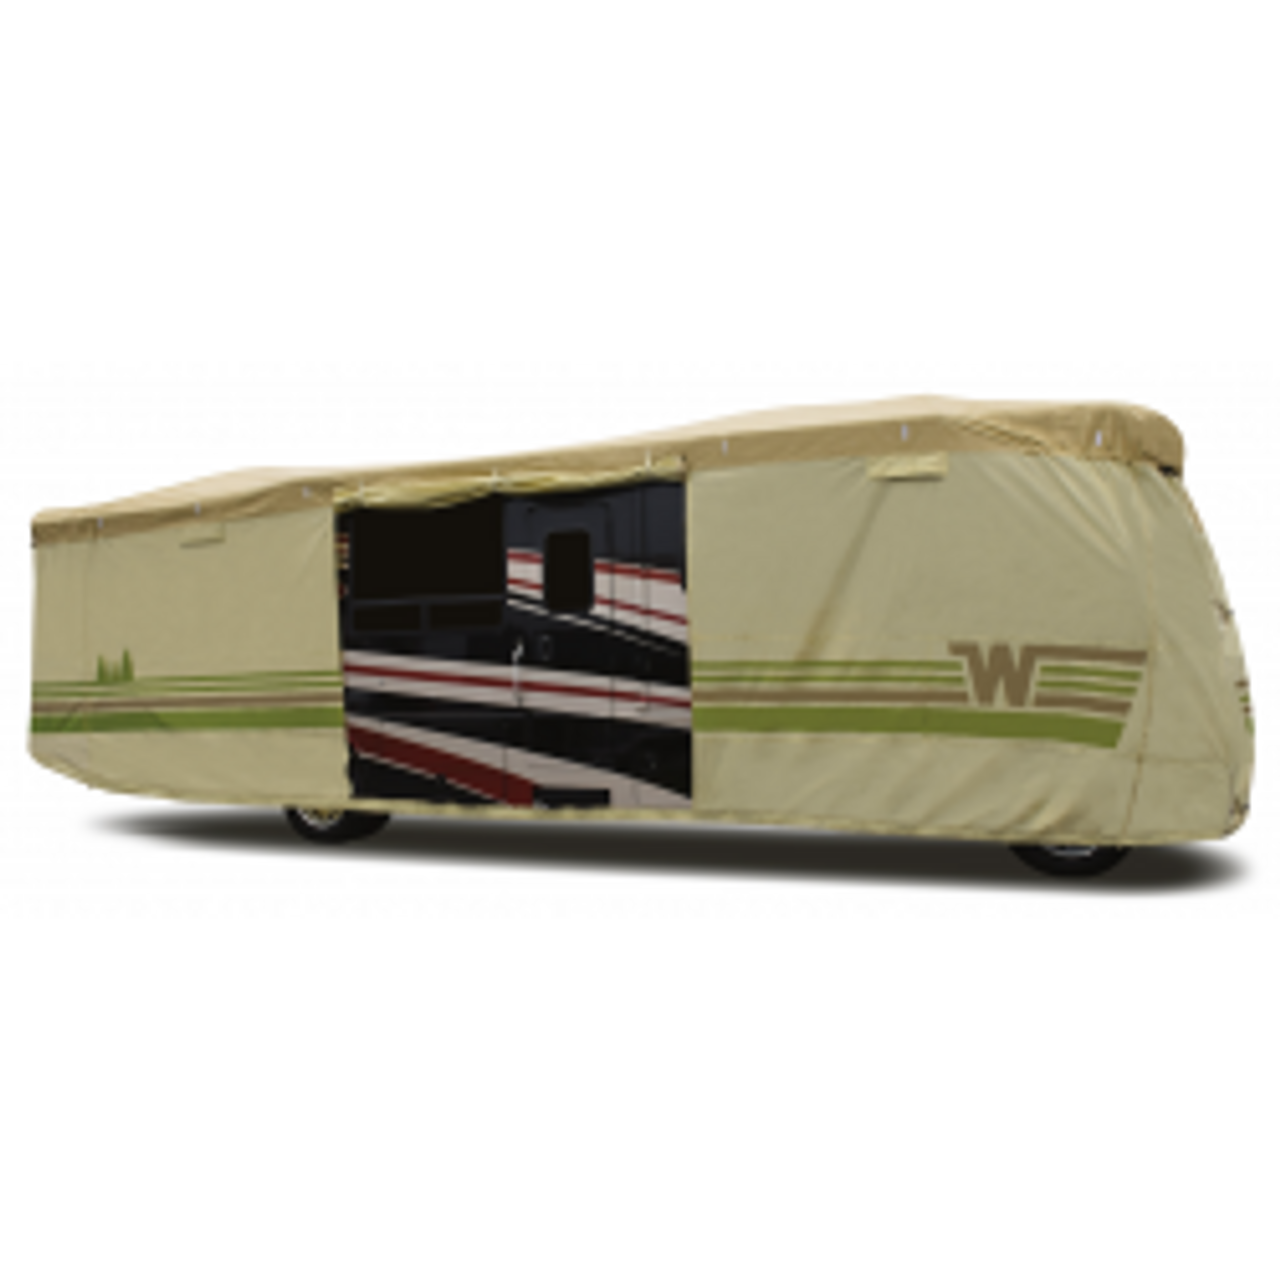 Contour-fit Class A RV Covers